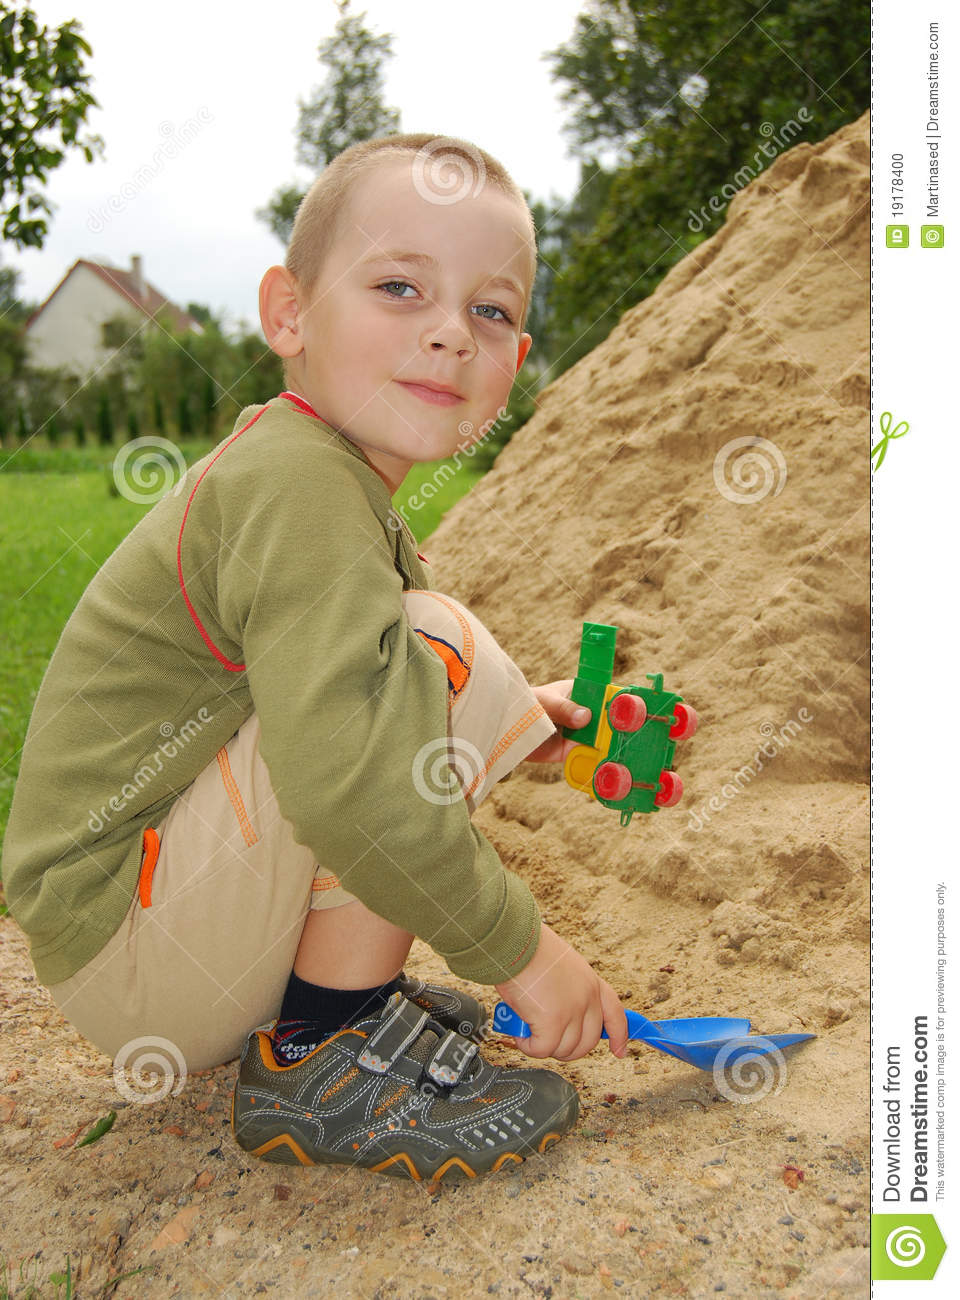 Play With Patterns Prints And Lots Of Accessories For: Little Boy Play With Sand Stock Photo. Image Of